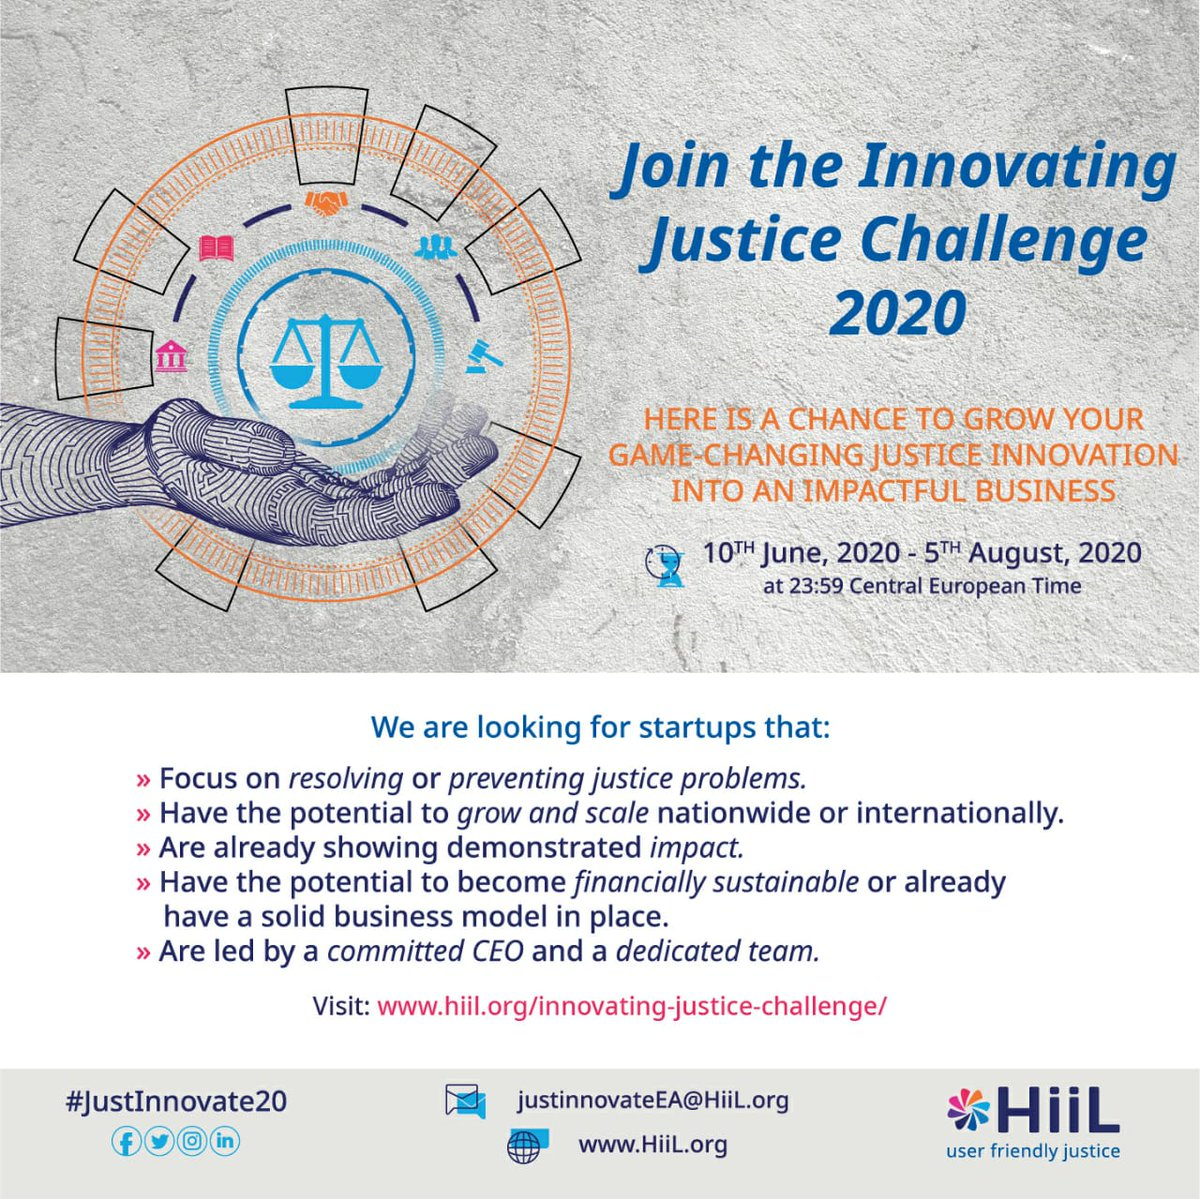 Applications for HiiL's Innovating Justice Challenge 2020 are now open!  Is your organisation developing sustainable solutions to justice? Are you creating access to justice, reducing inequality and unfairness?  Apply here https://t.co/MYUK1UwlZb  #Justinnovate20 https://t.co/5gLZHohtGT